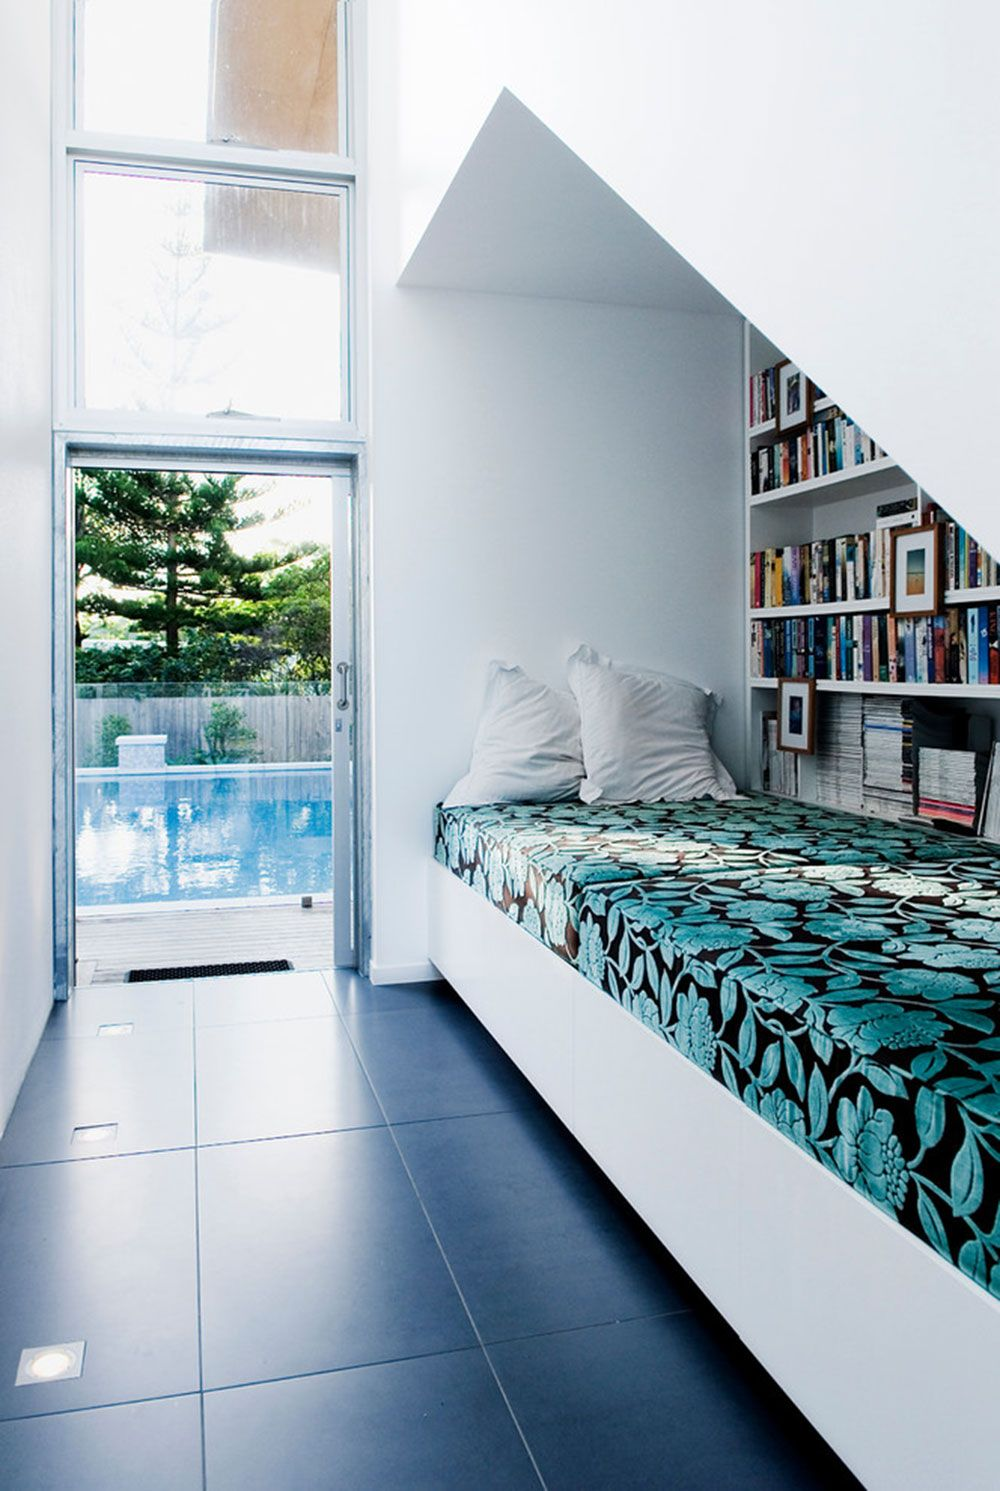 Bed under window  how to design a reading nook for poetic moments  nook designs